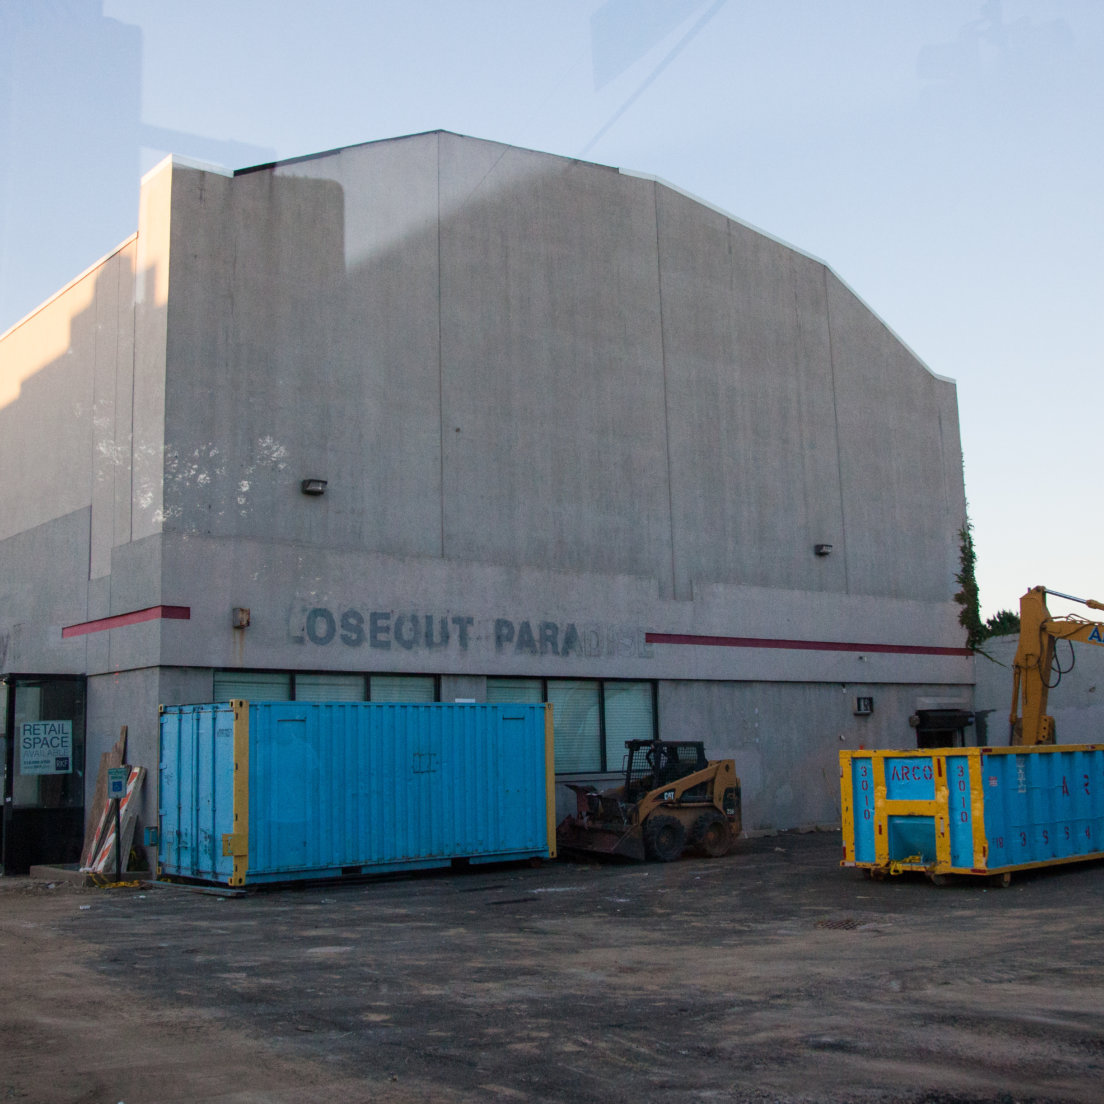 Construction to expand building begins at the vacant Oasis Theater in Ridgewood